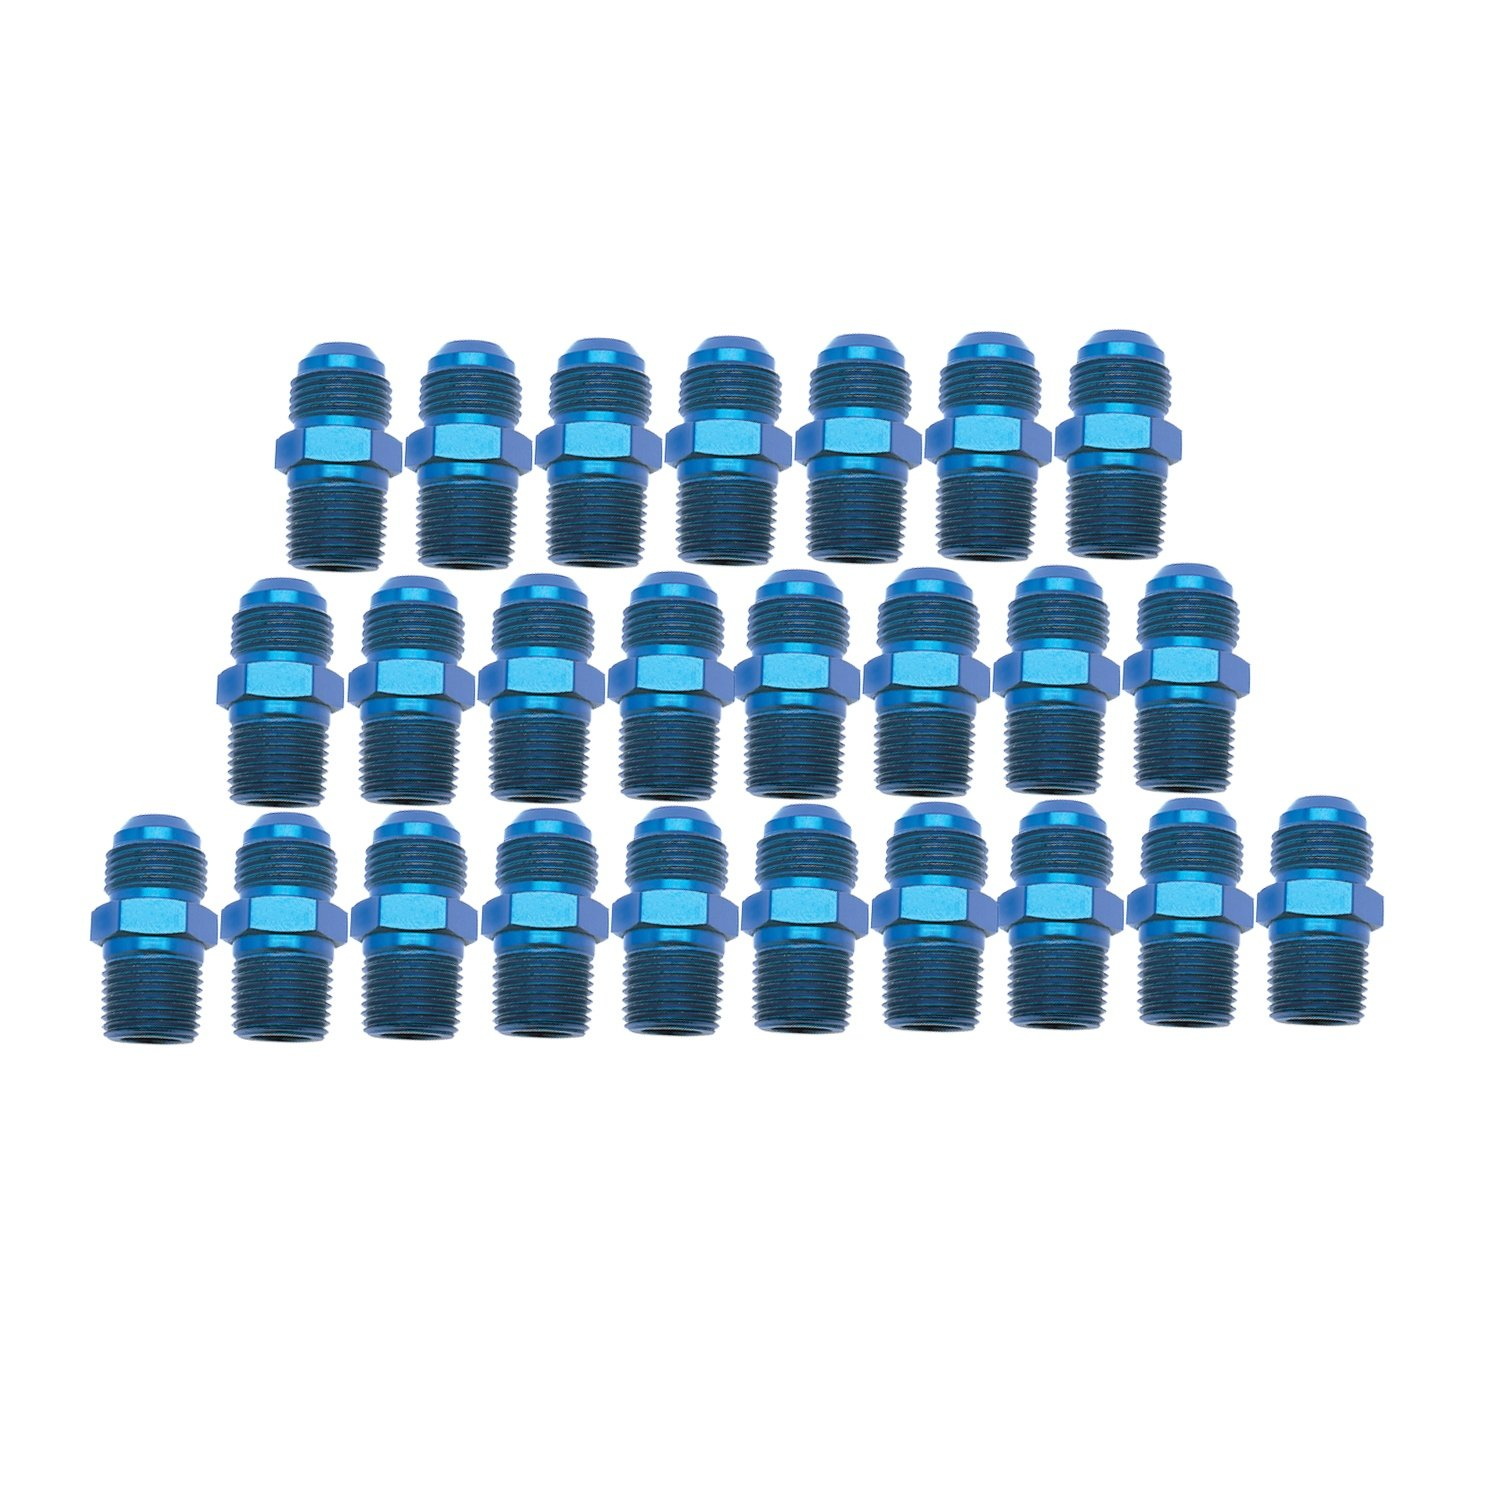 Straight 25 Piece RUS-660428 Russell 660428 Flare to Pipe Union